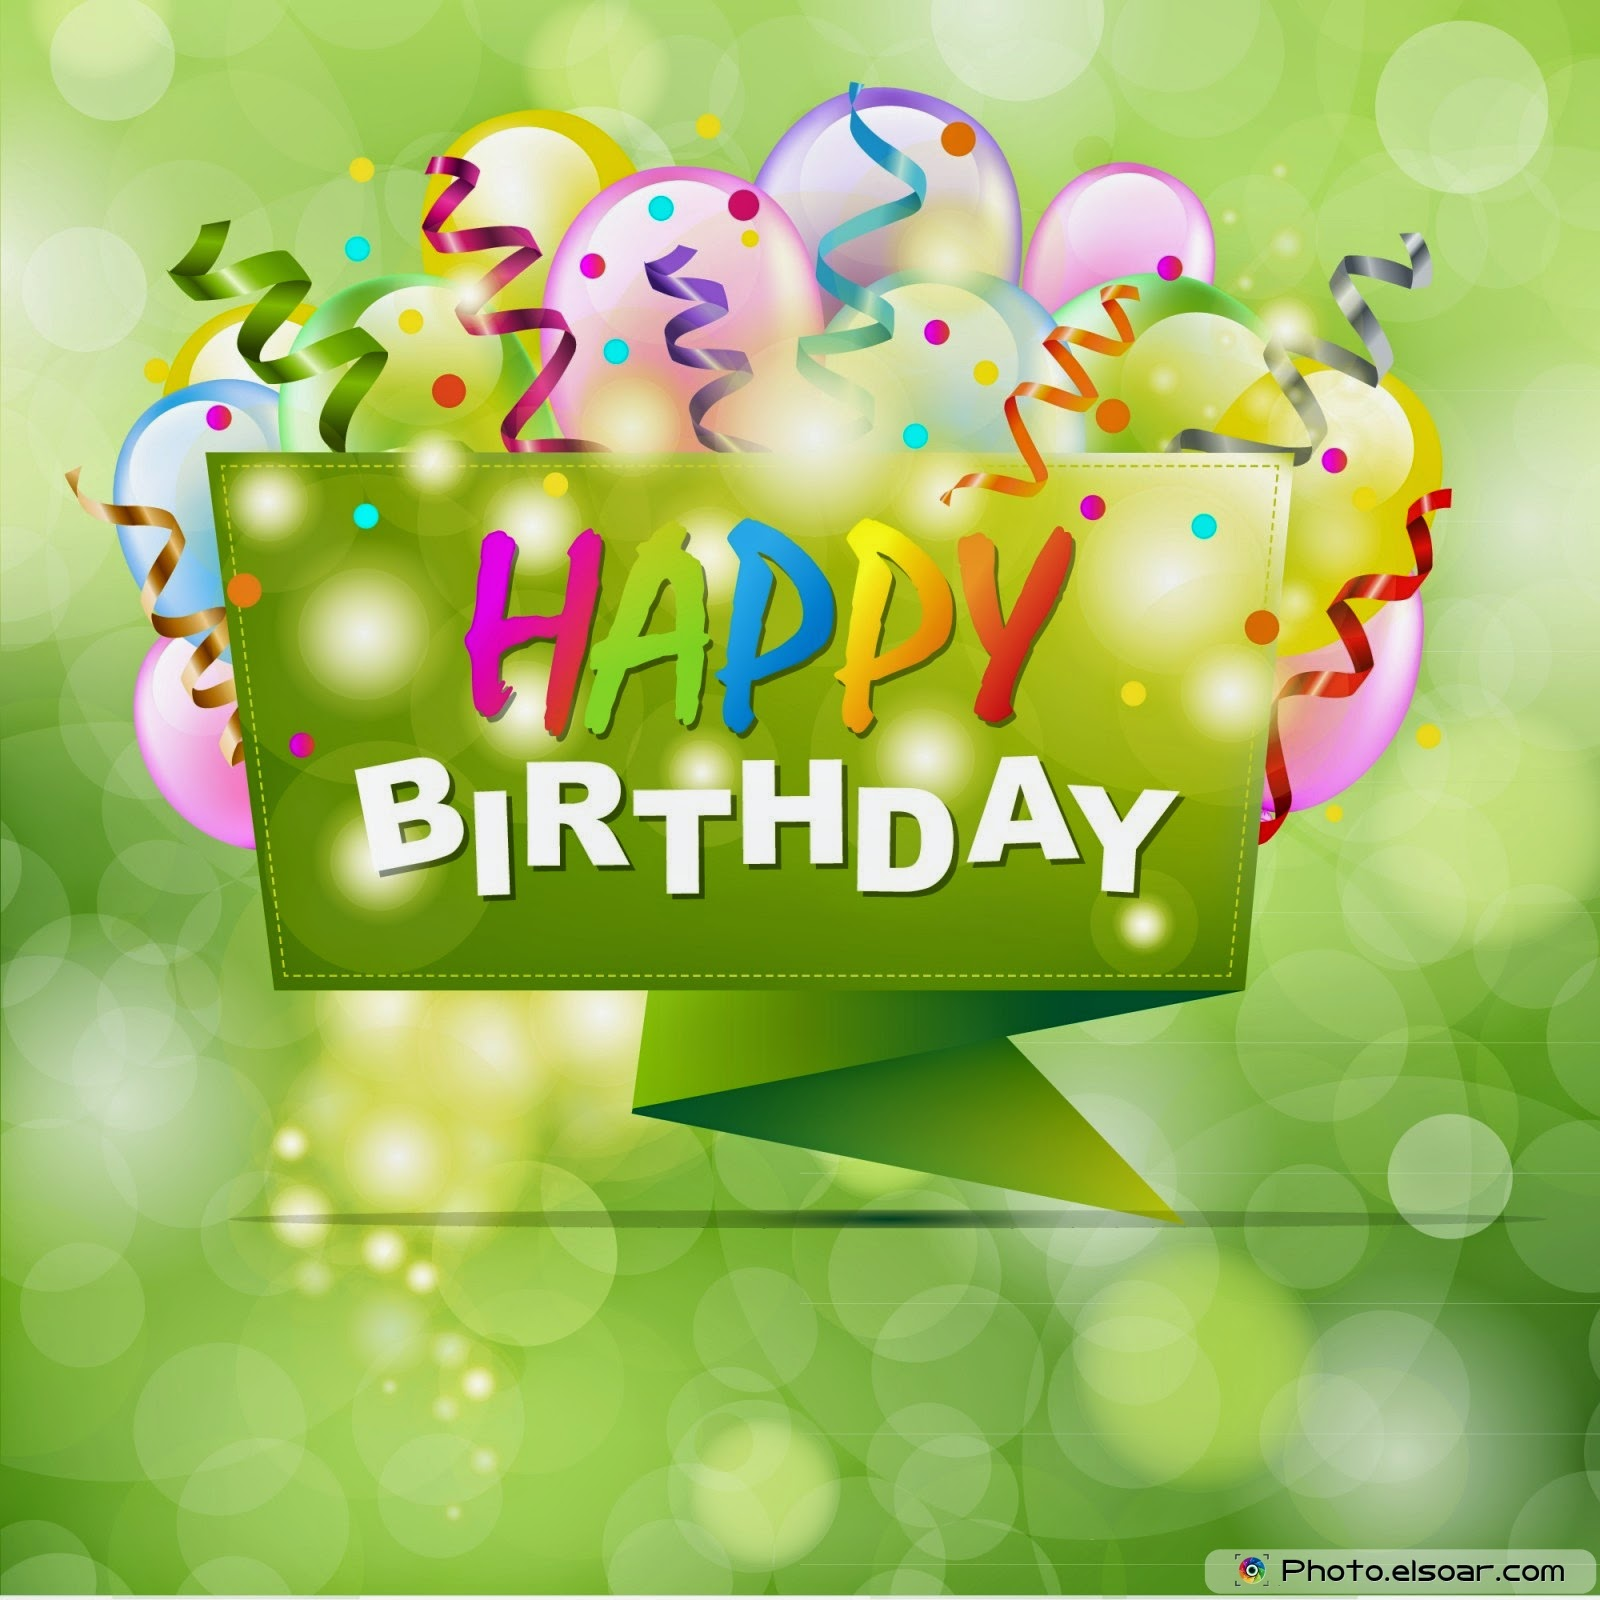 birthday picture messages free download ; 555e96eaf4fe6cb5b14cb7b30b545a87